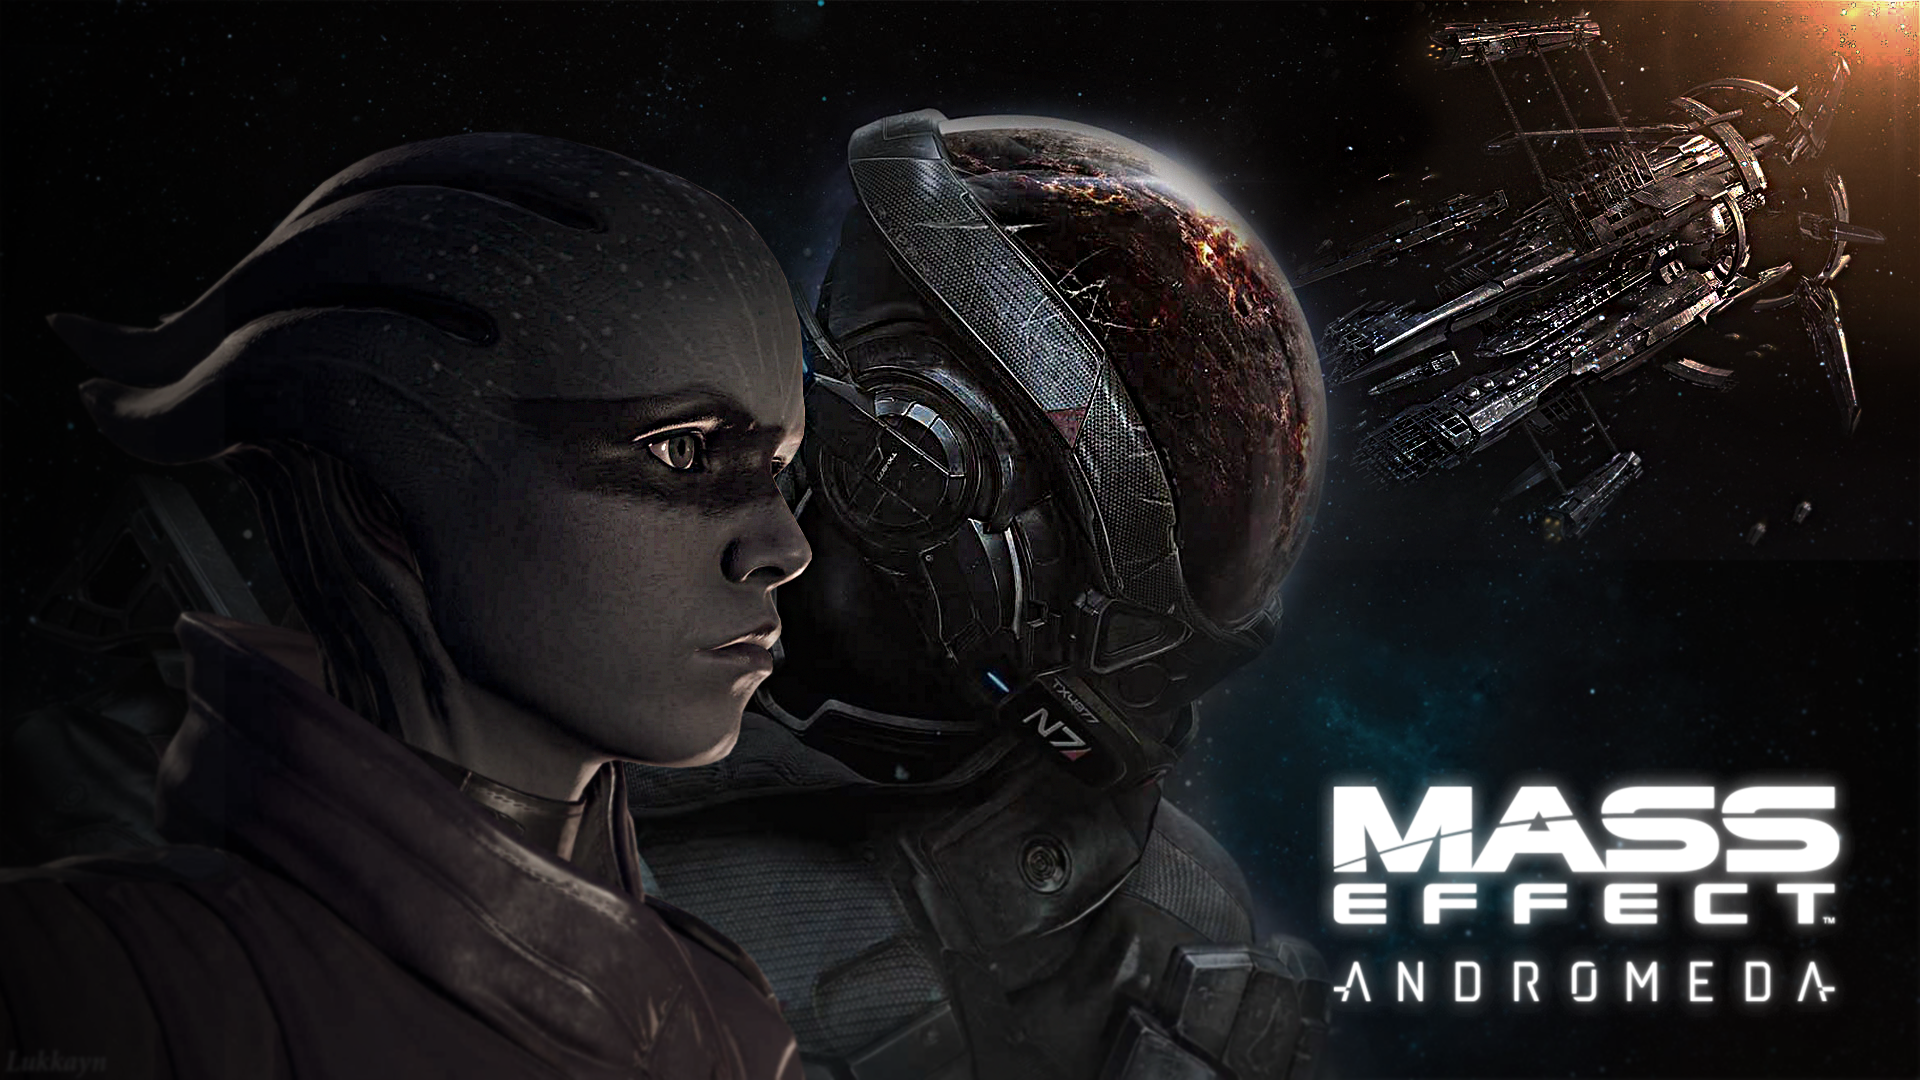 yjc58c1y.png - Mass Effect: Andromeda